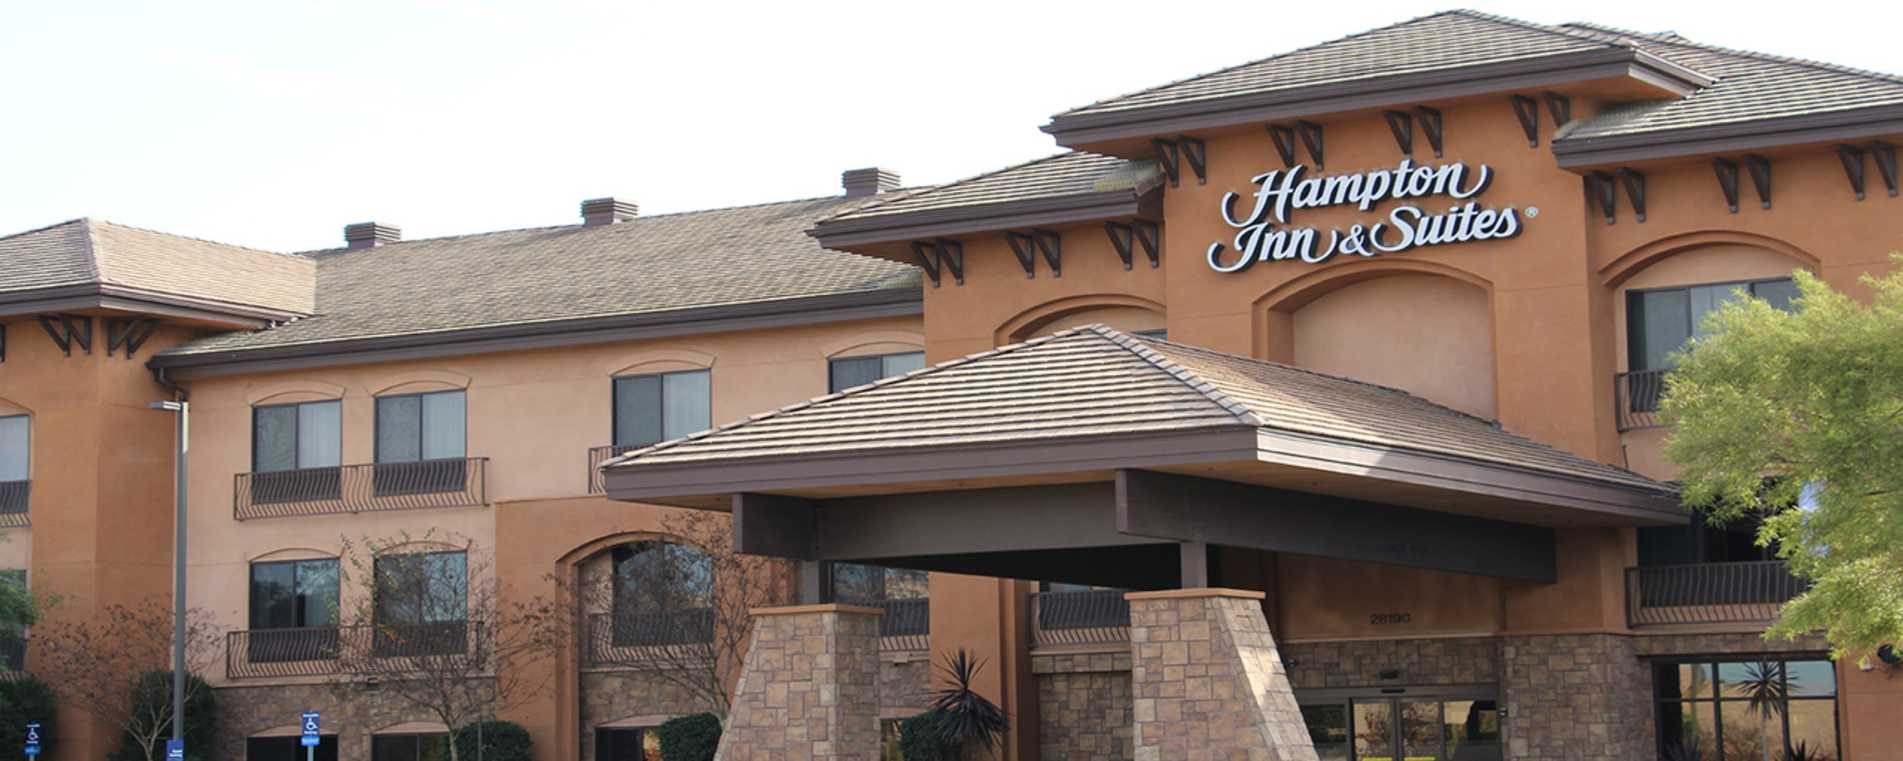 Hampton Inn and Suites - Temecula